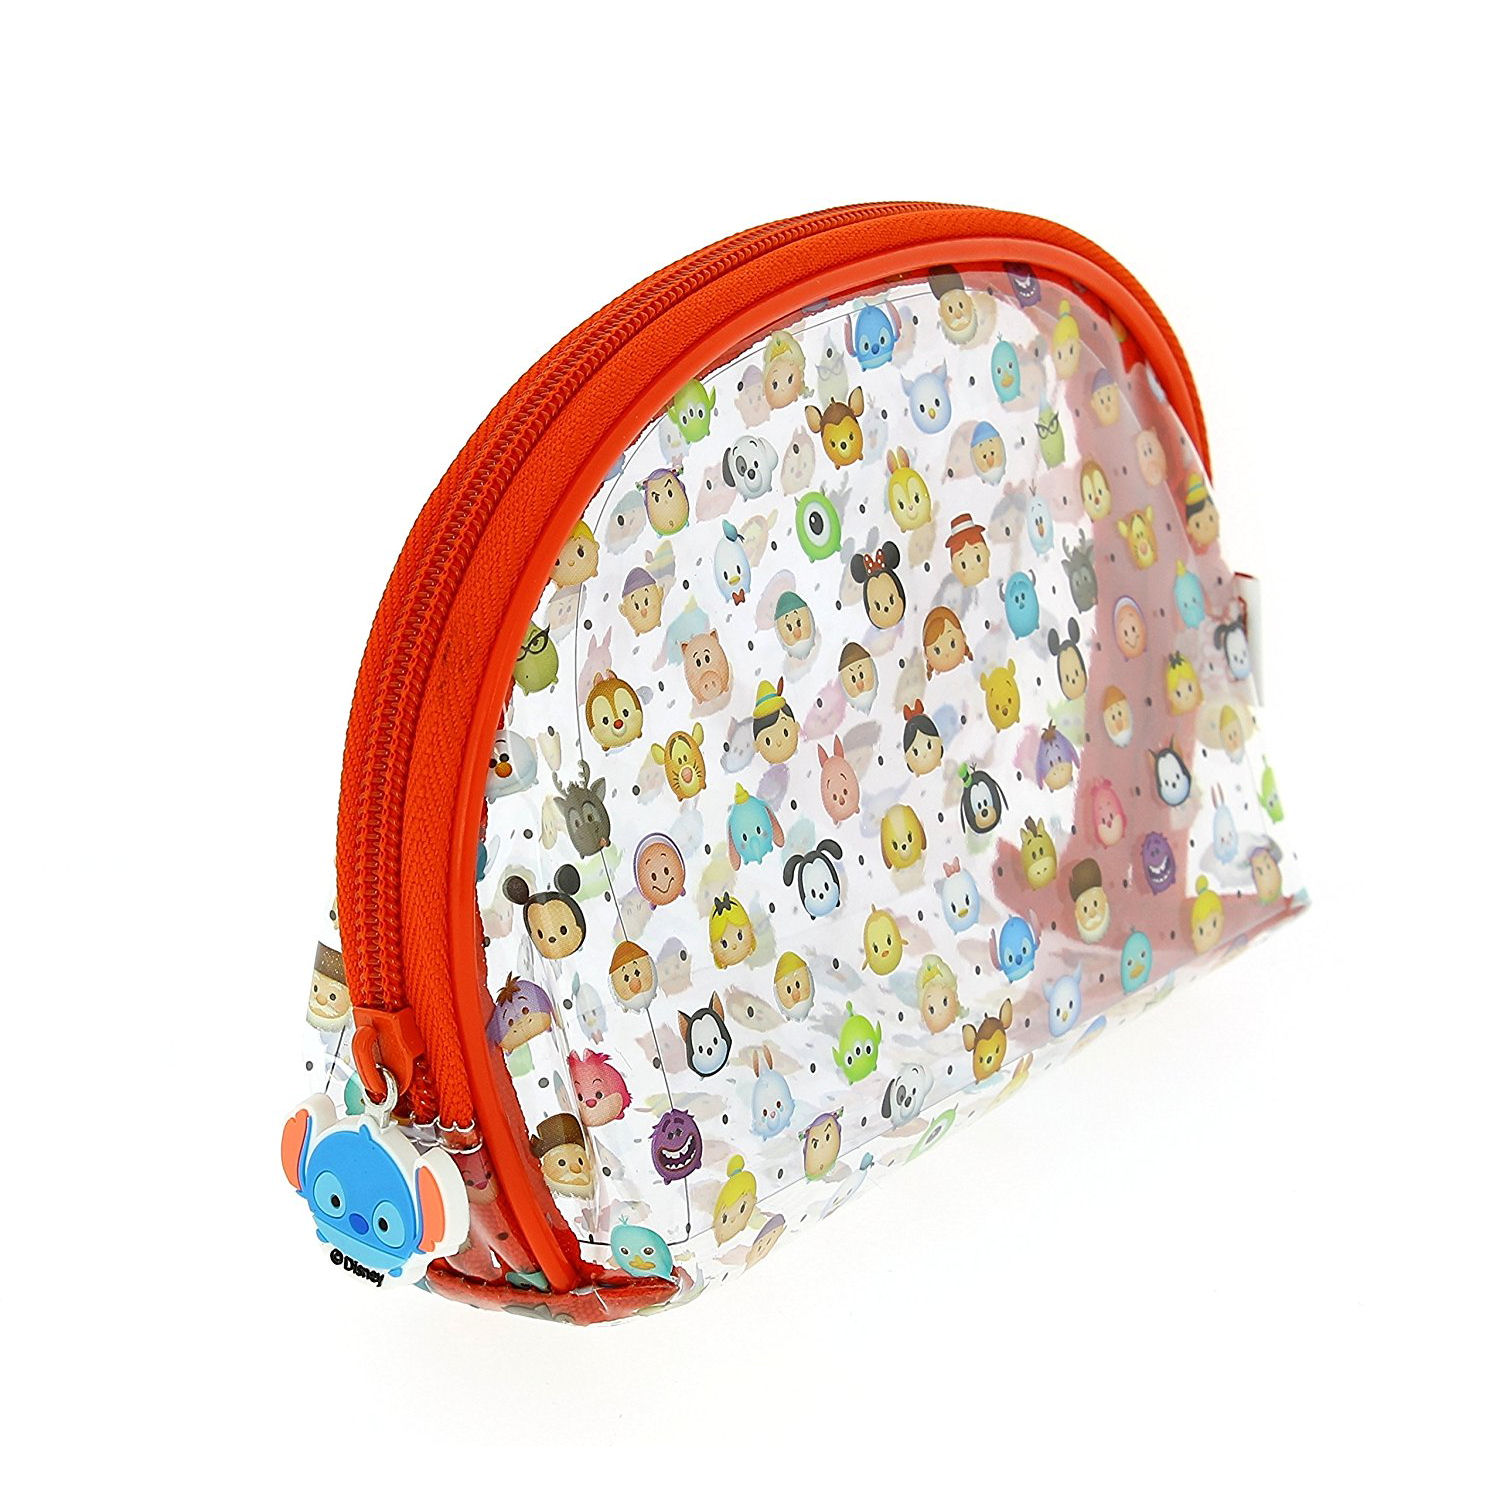 Disney Tsum Tsum Large Clear Pencil Case